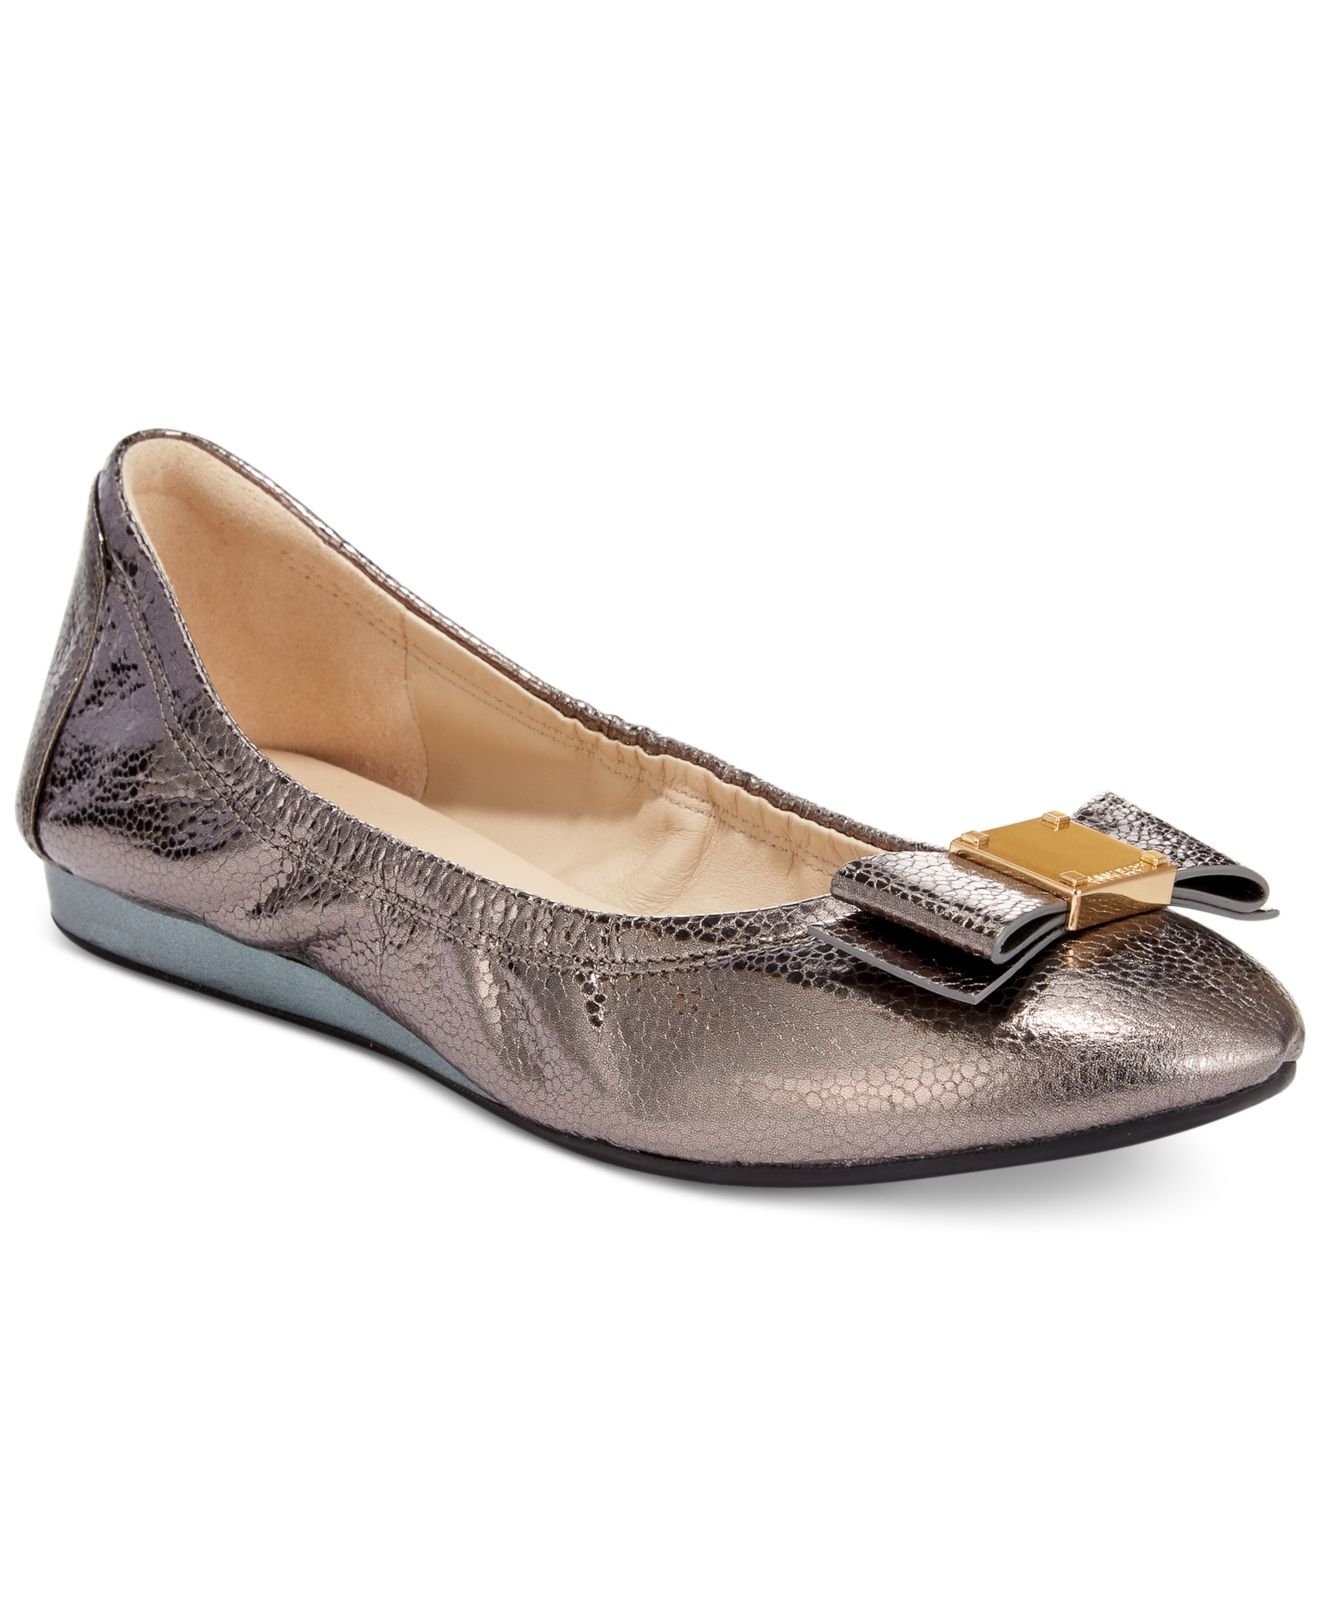 Womens Shoes Cole Haan Tali Bow Ballet Dark Silver Metalic